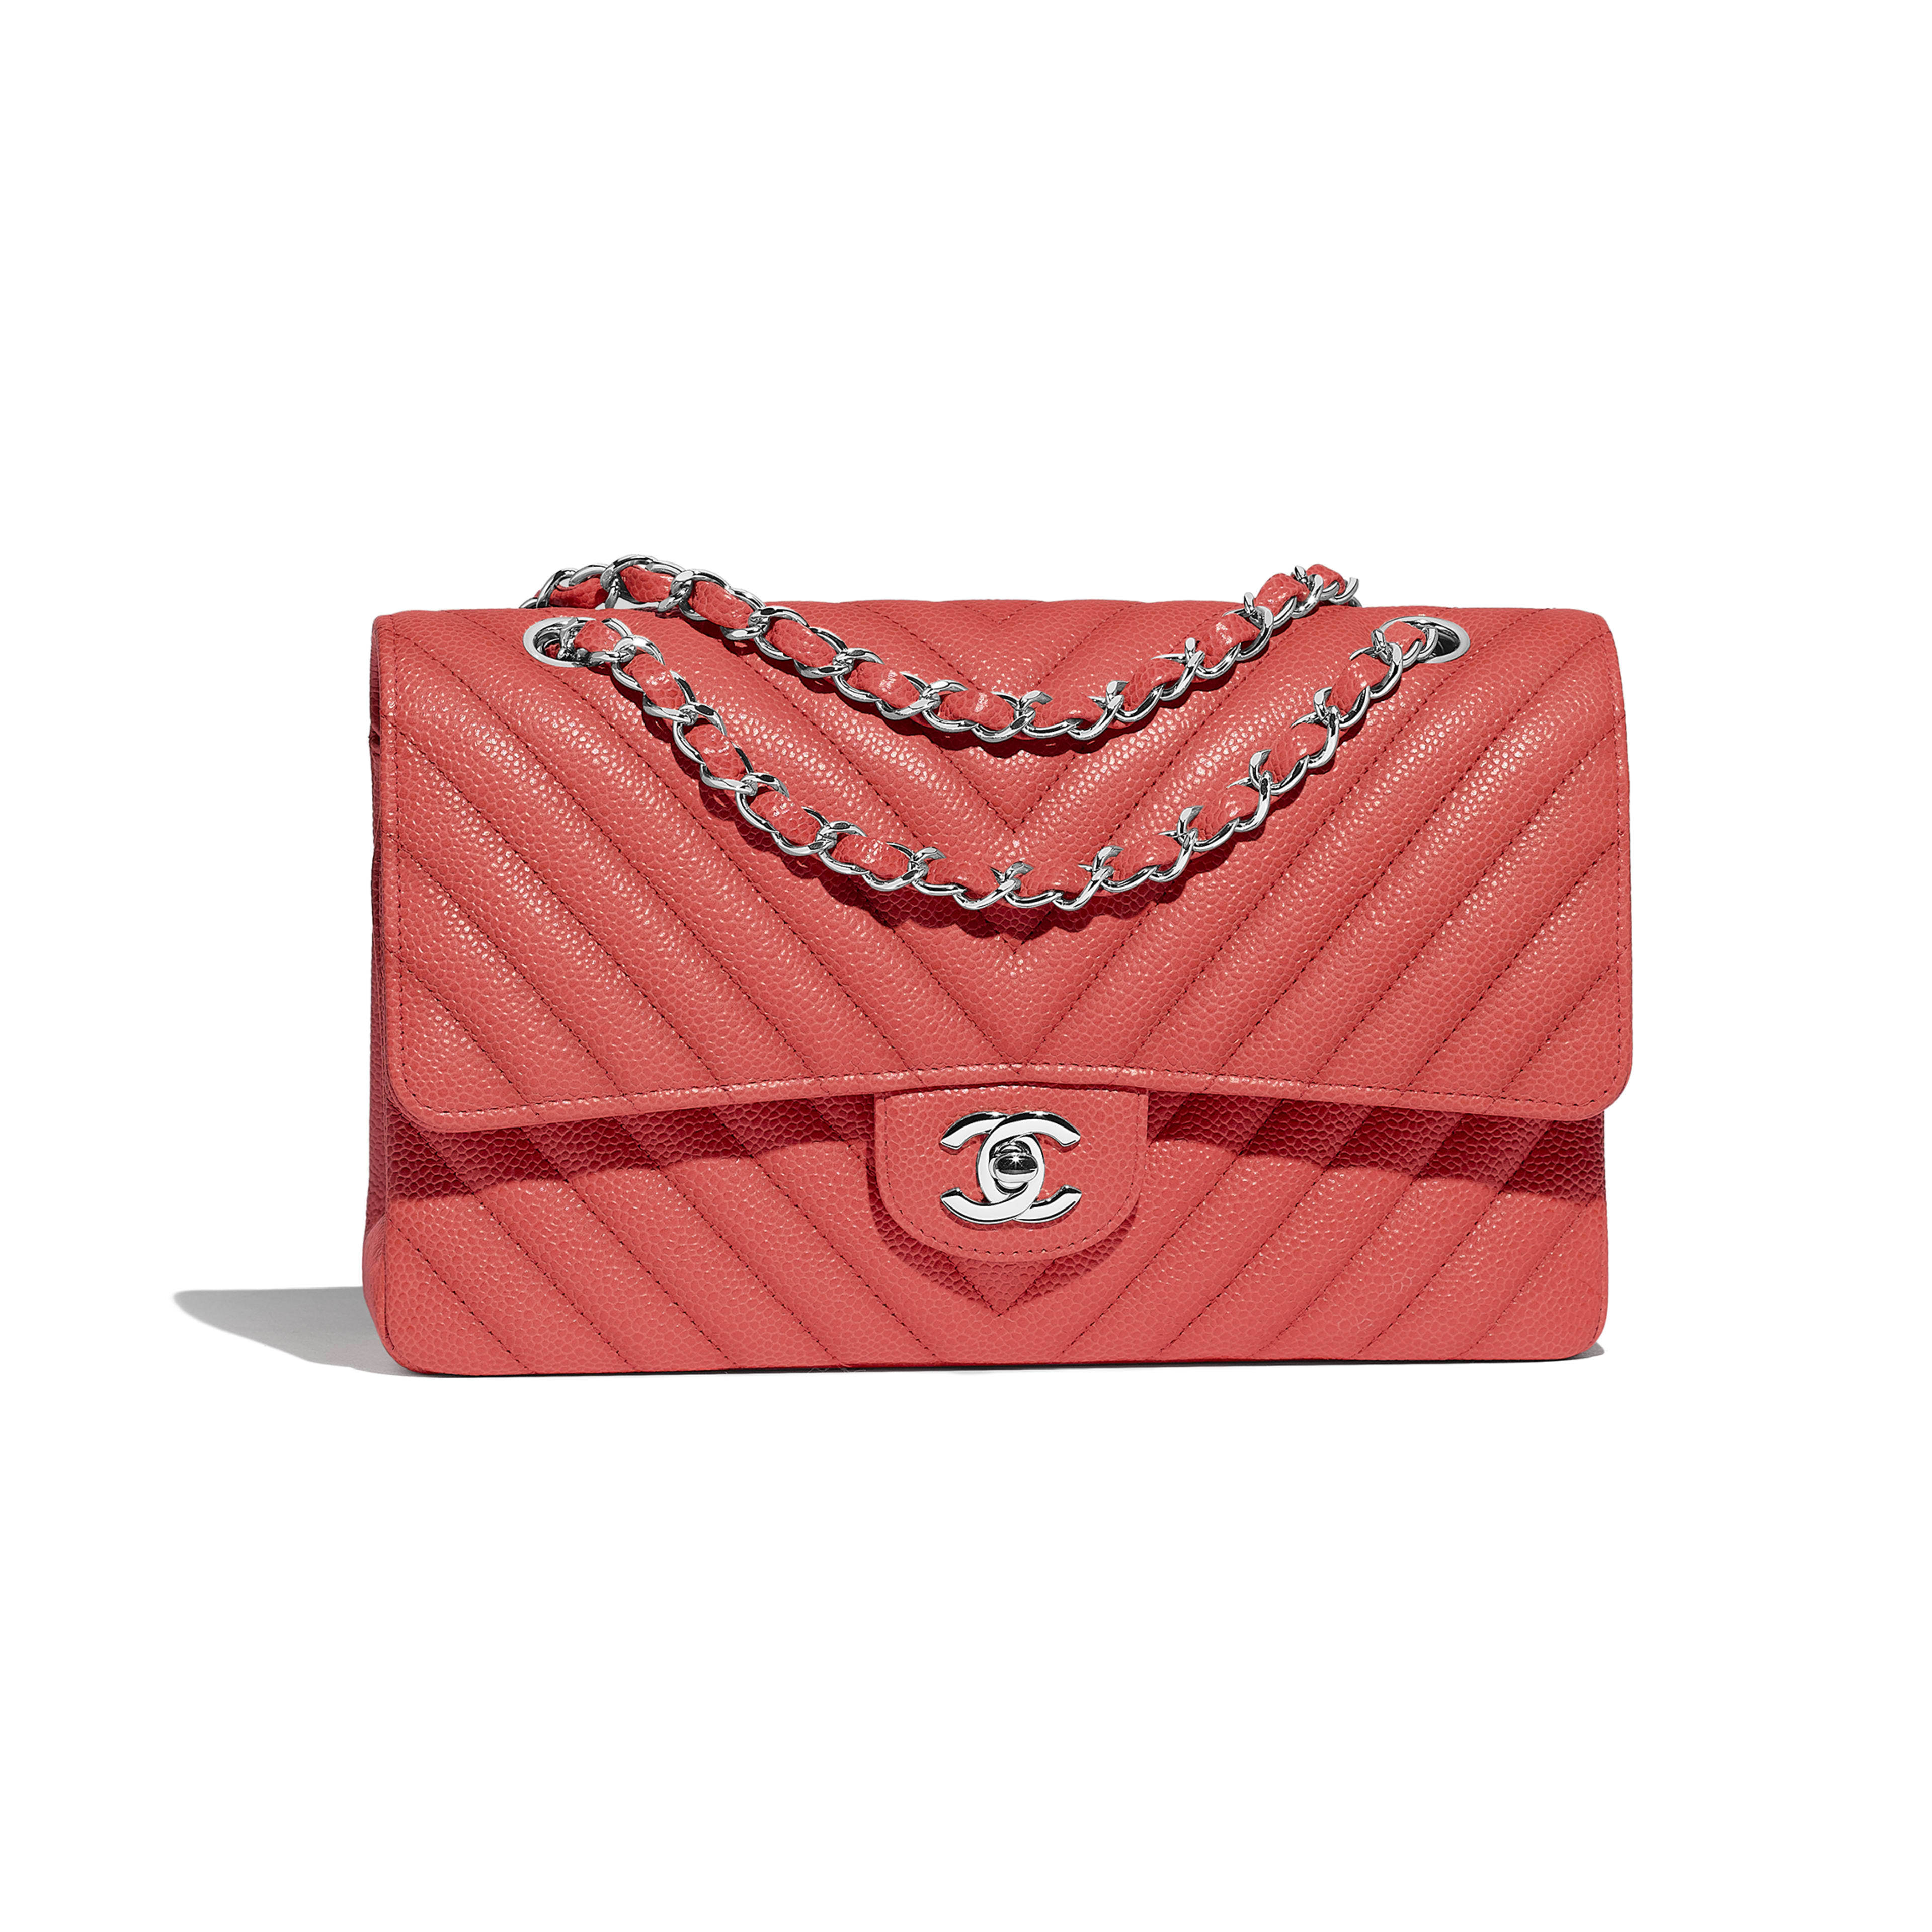 Classic Handbag - Coral - Grained Calfskin & Silver-Tone Metal - Default view - see full sized version